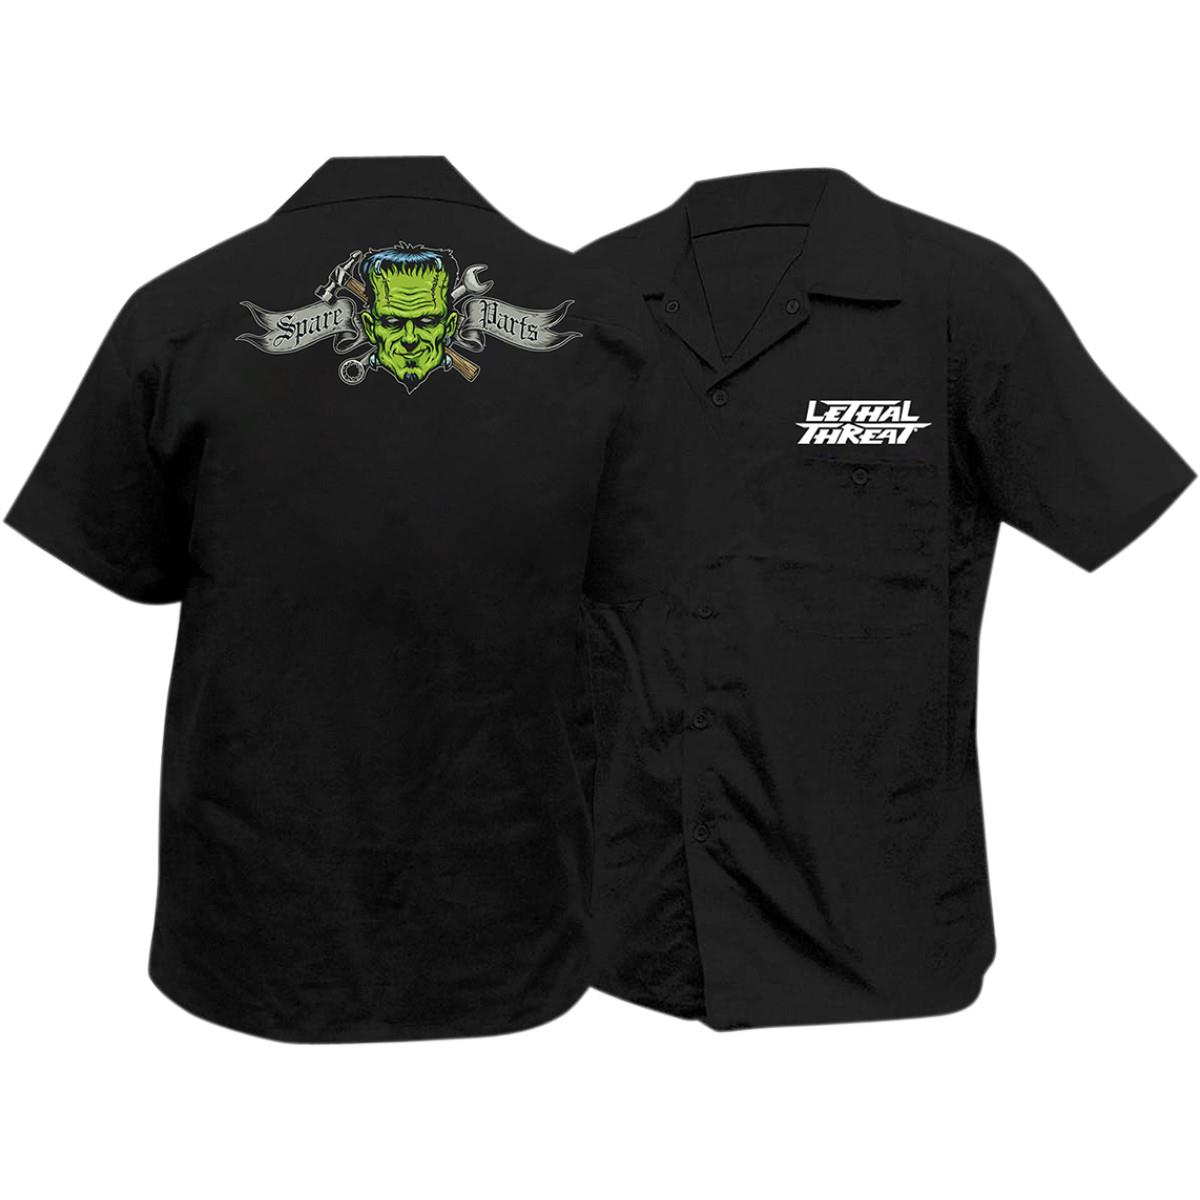 Lethal threat spare parts embroidered work shirt 2wheel for Embroidered work shirts online